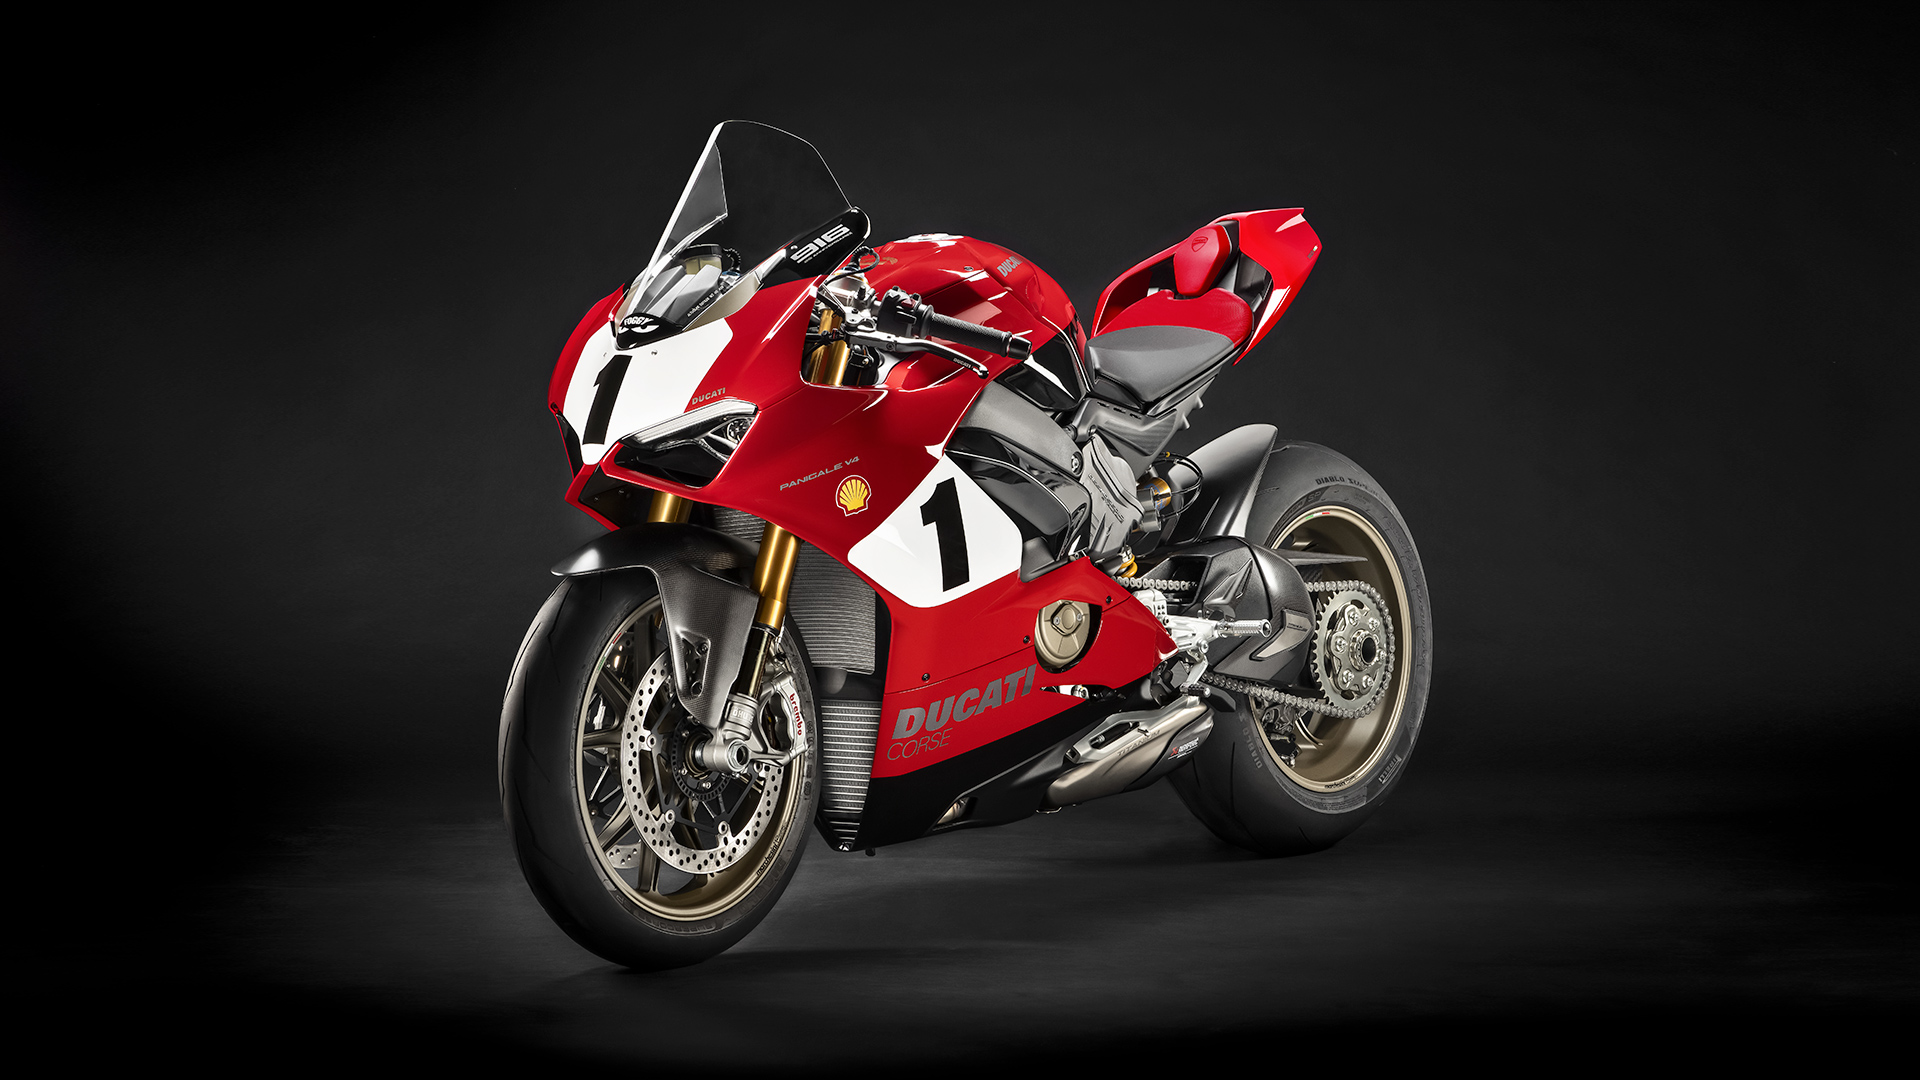 Ducati celebrates the 25th anniversary of the iconic 916 super bike with a limited edition of the Panigale V4